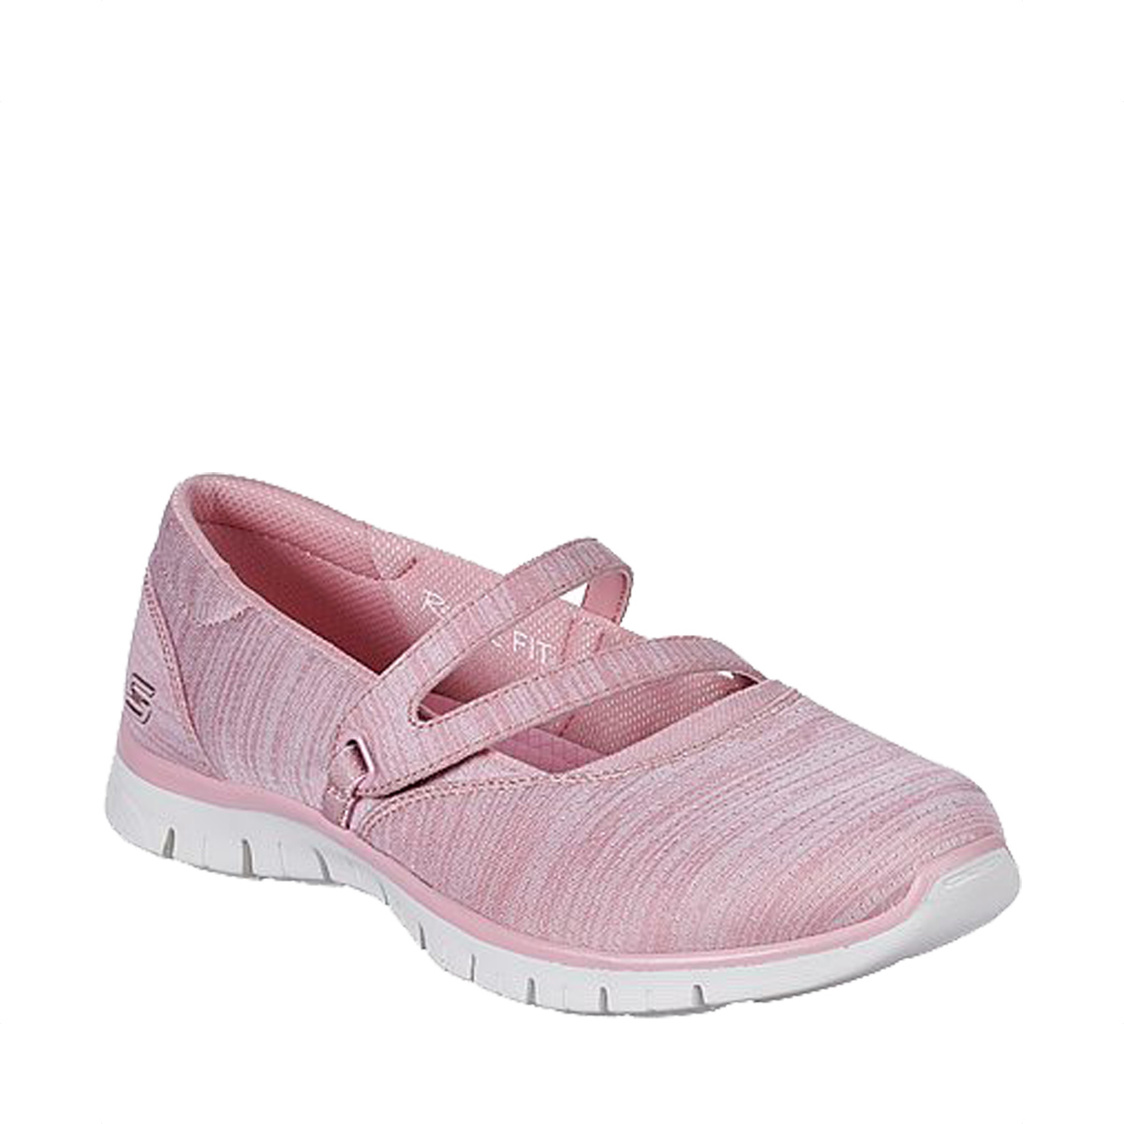 Skechers Relaxed Fit  EZ Flex Renew - Make It Count 23469 Pink